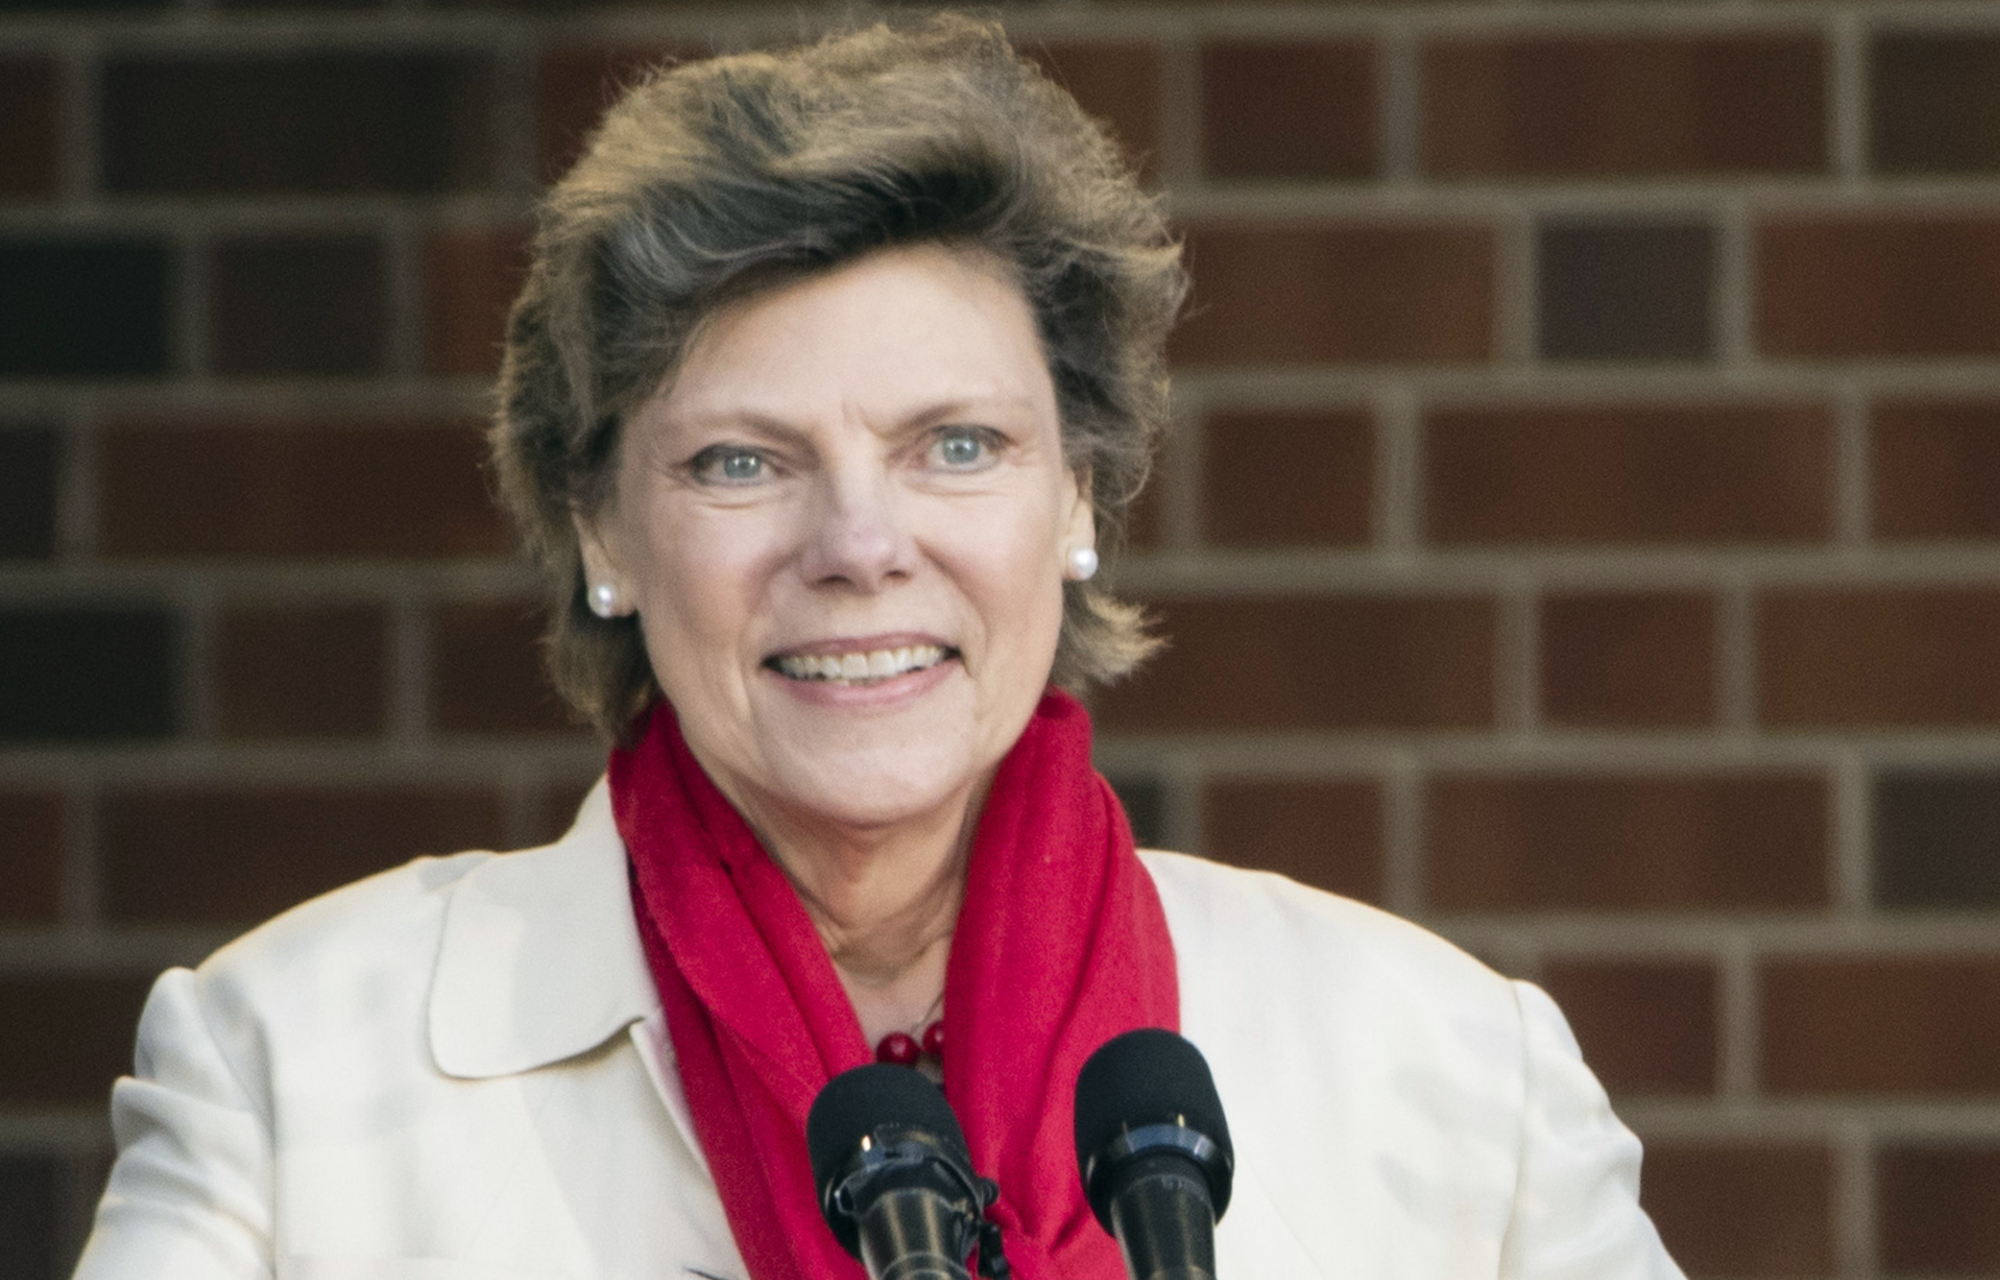 'She Touched Their Lives': Friends, Family Gather To Remember Cokie Roberts